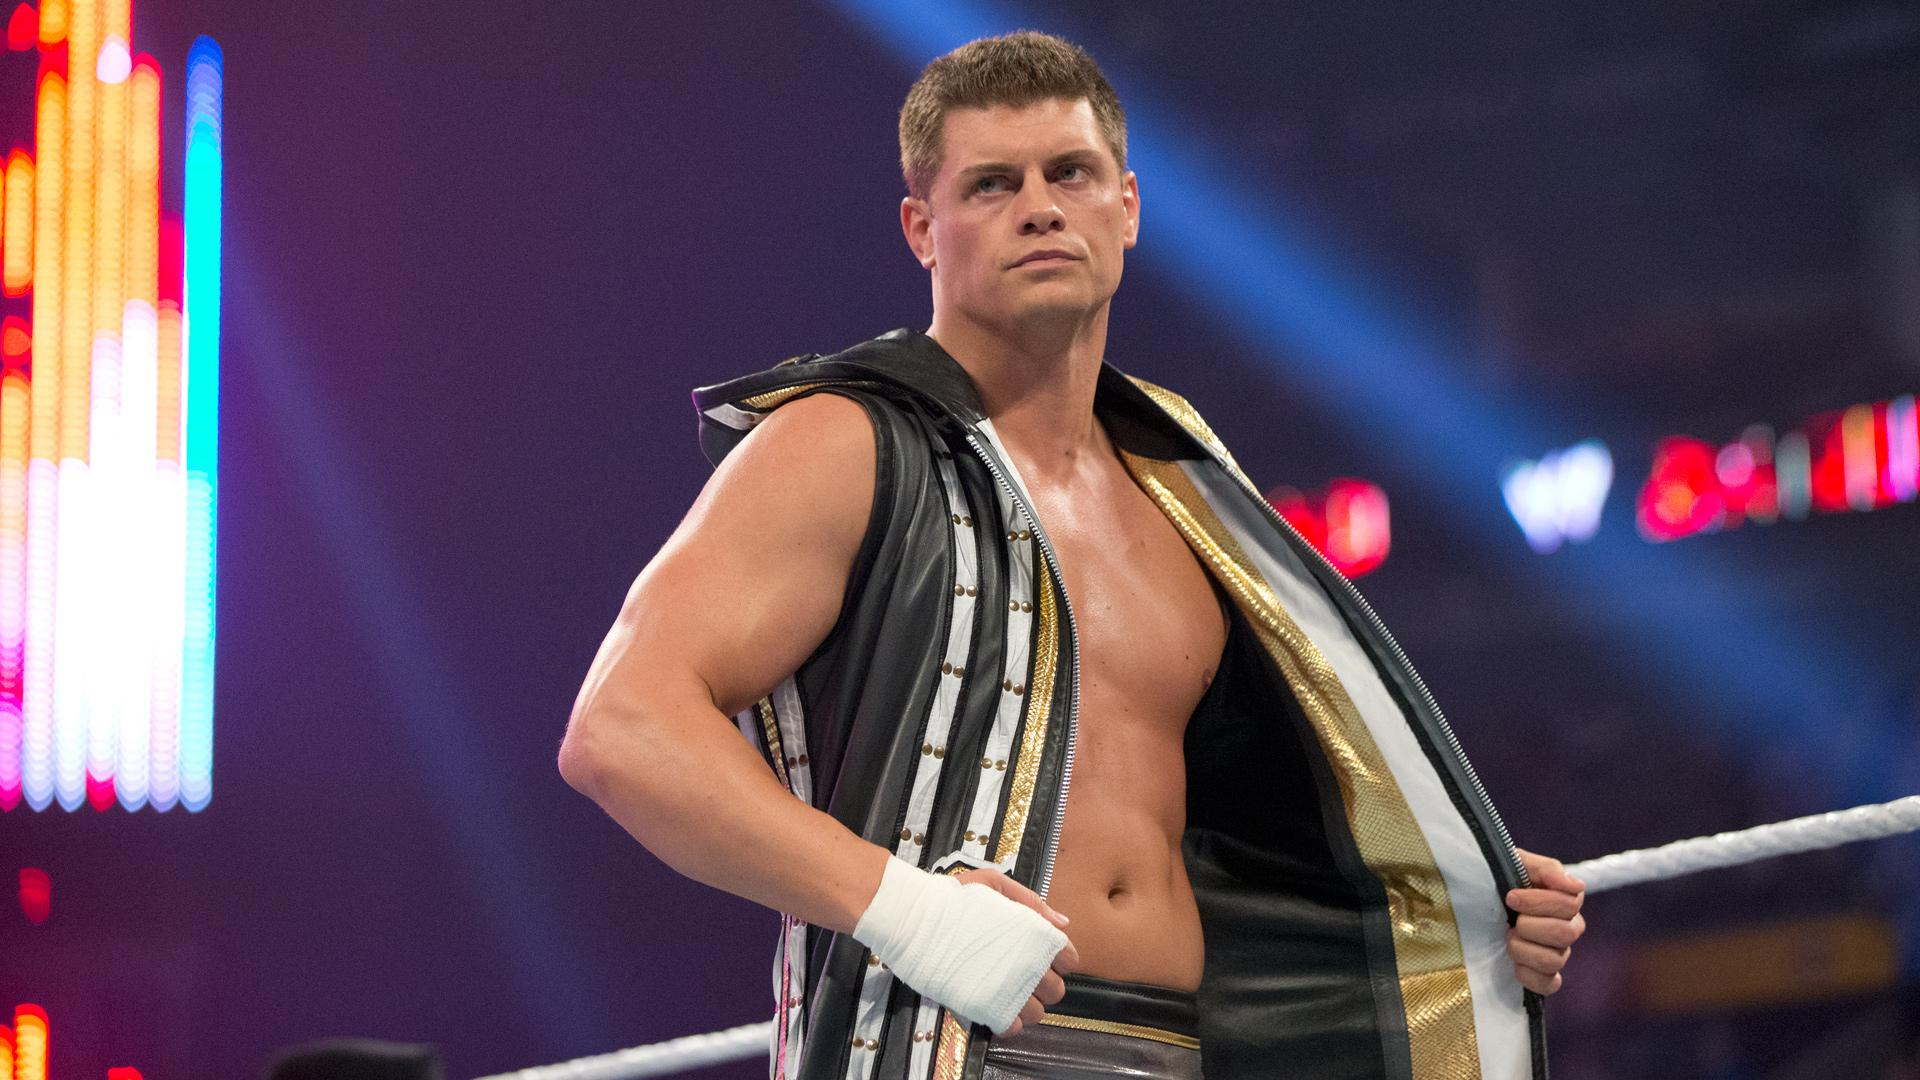 Cody Rhodes Discusses Life After WWE OWW